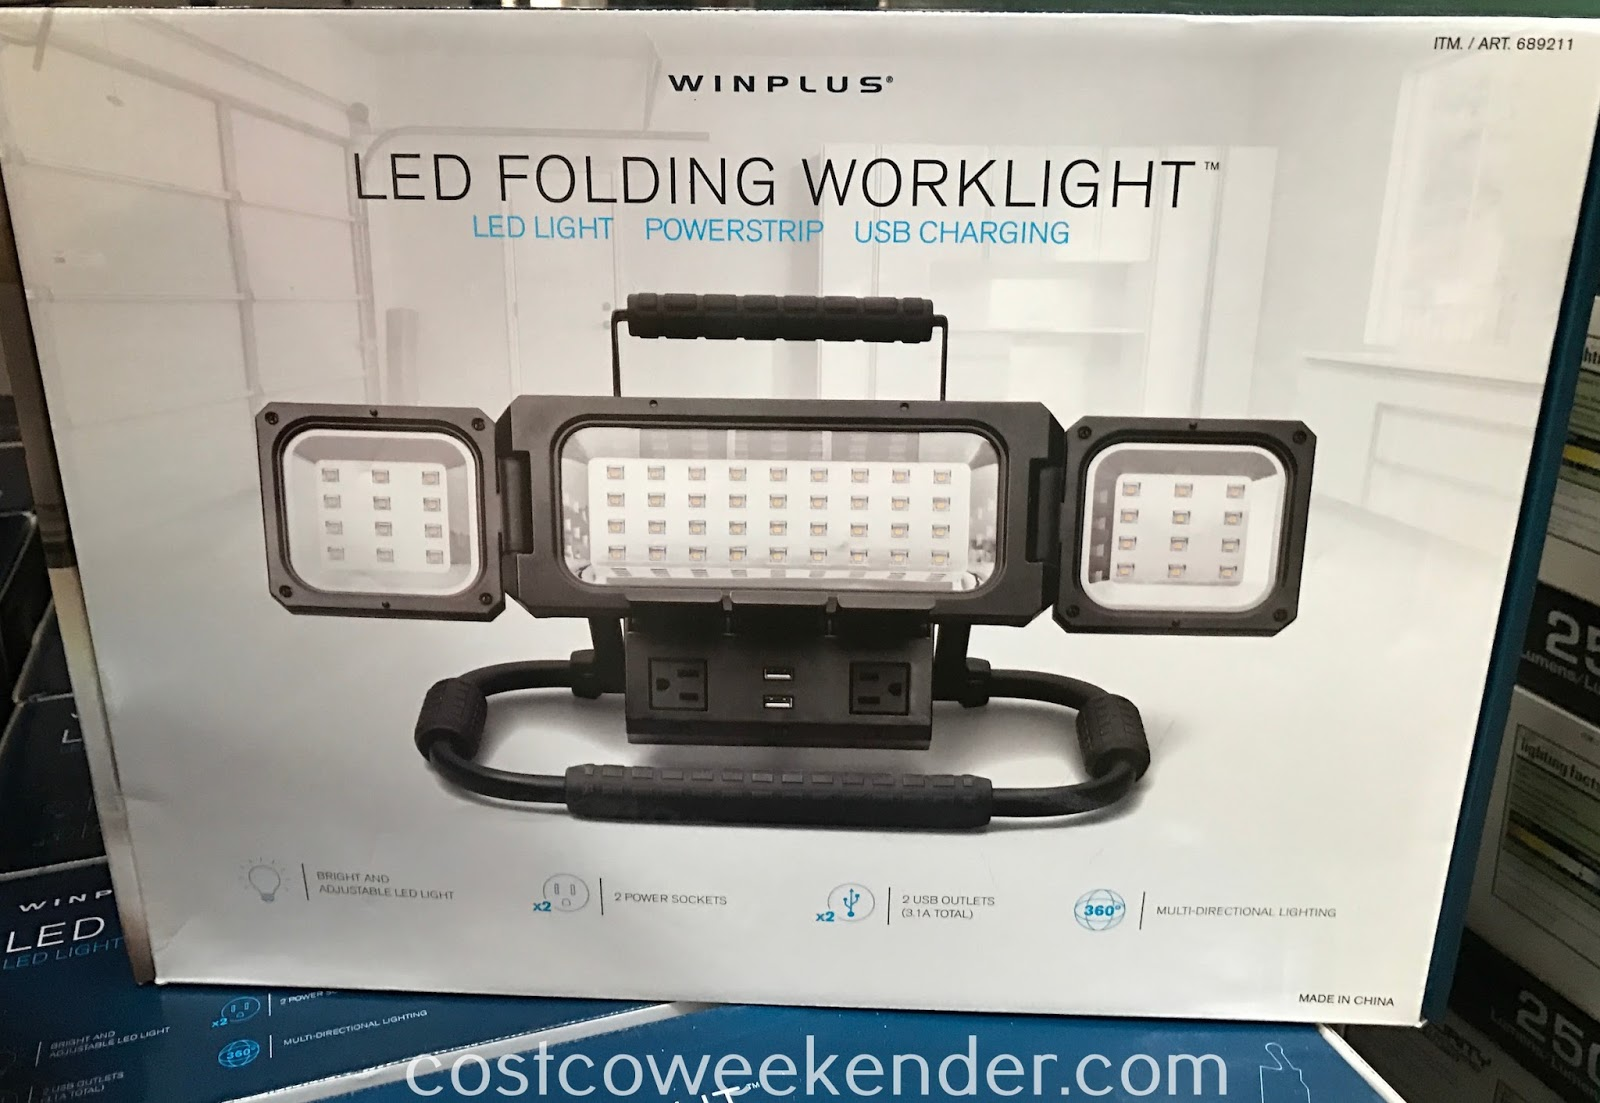 Get ready to do some work on your car even at night, thanks to the Winplus LED Folding Worklight